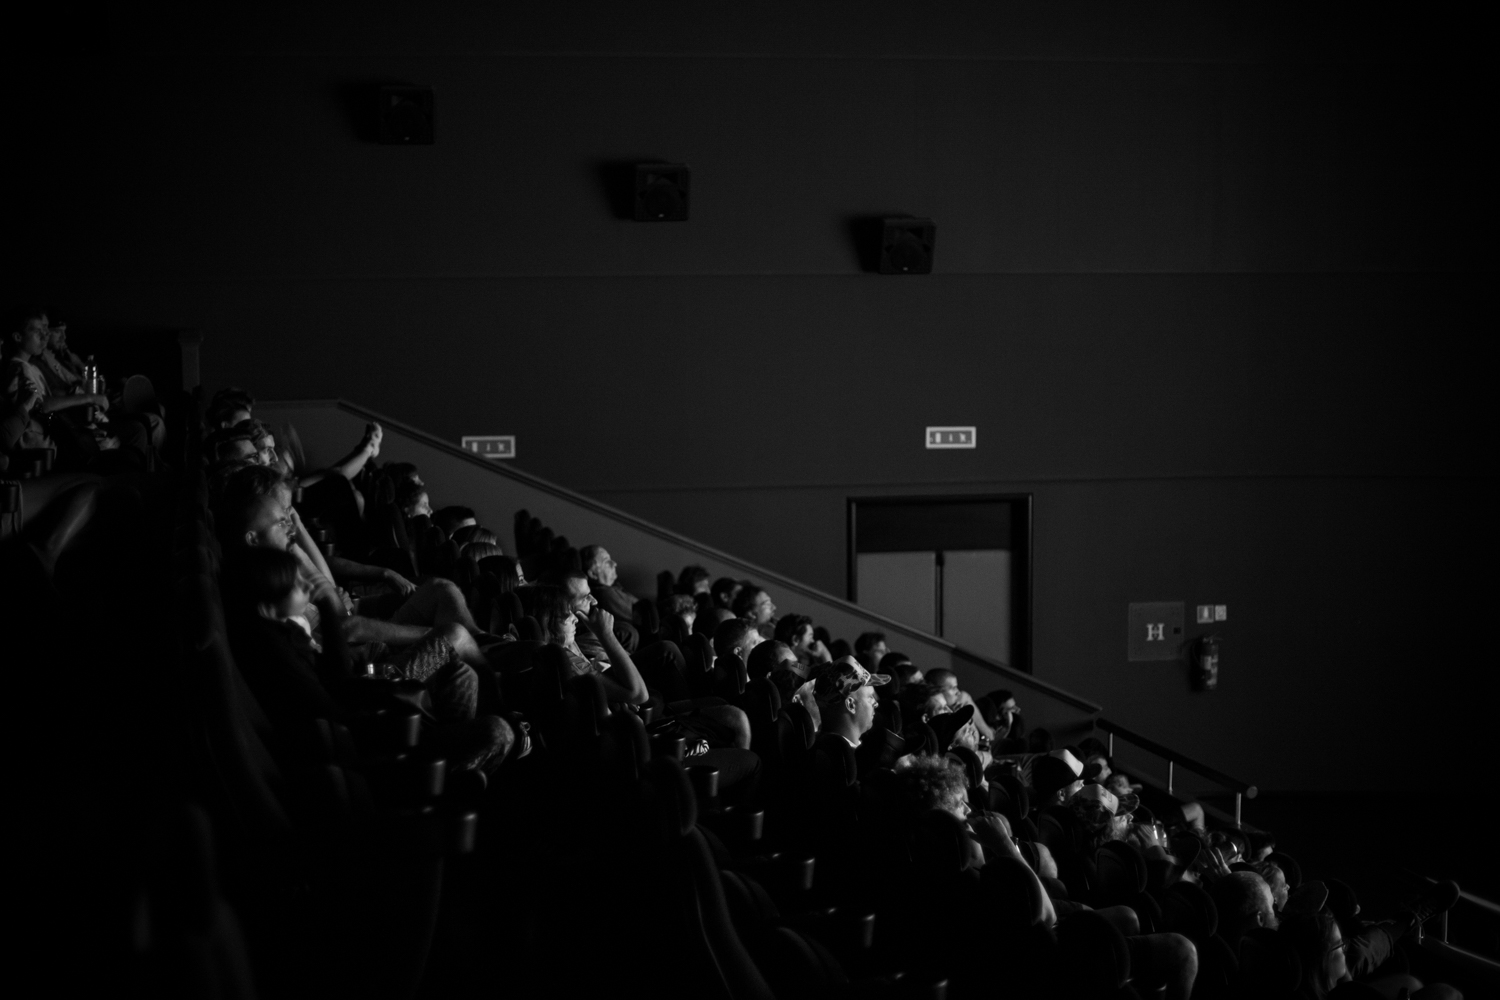 """Danger Dave"" screening @ Kino Valli, Vladimir Film Festival 2015. Ph. : Tomaz Santl"